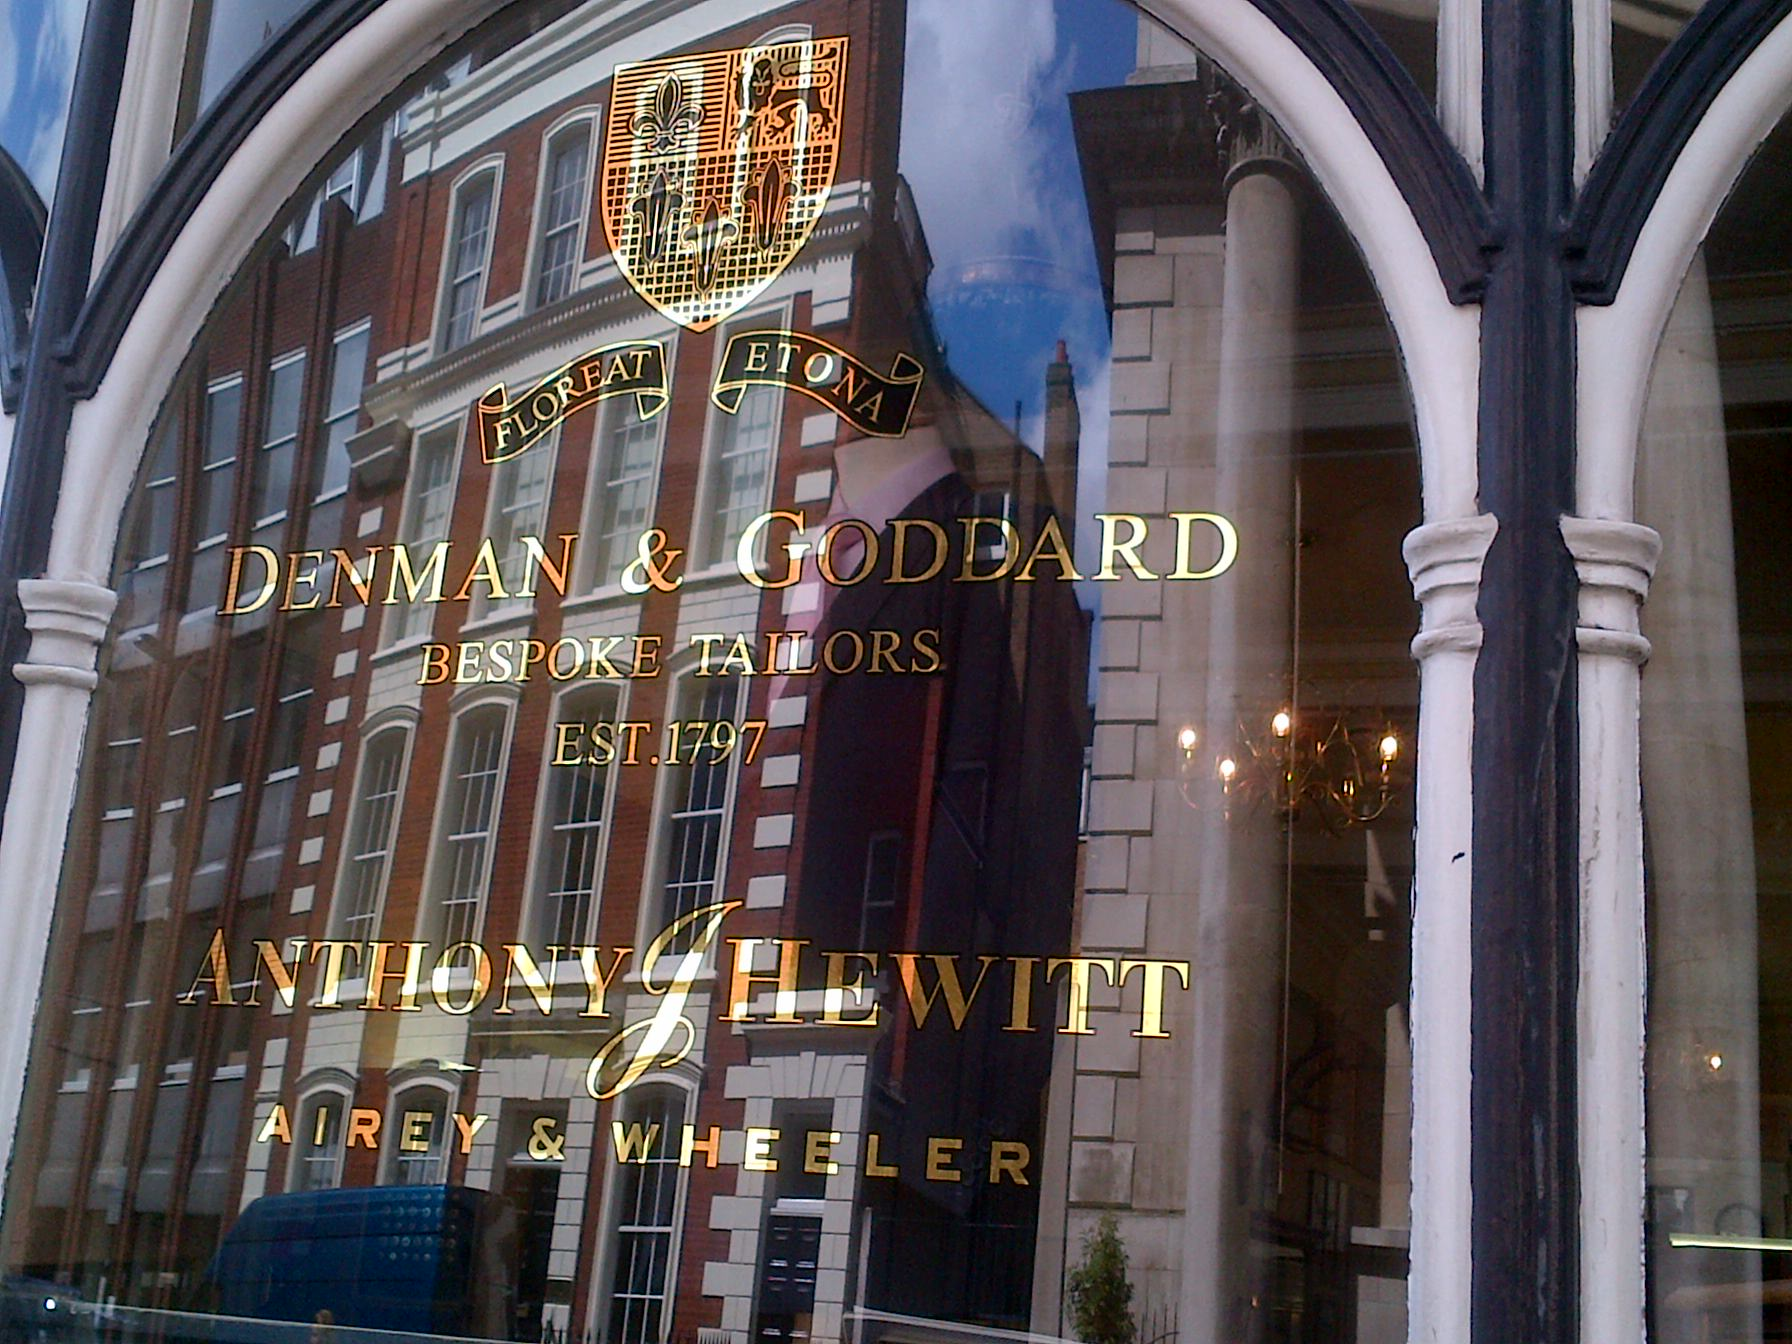 Gilded lettering at Savile Row, London 2013